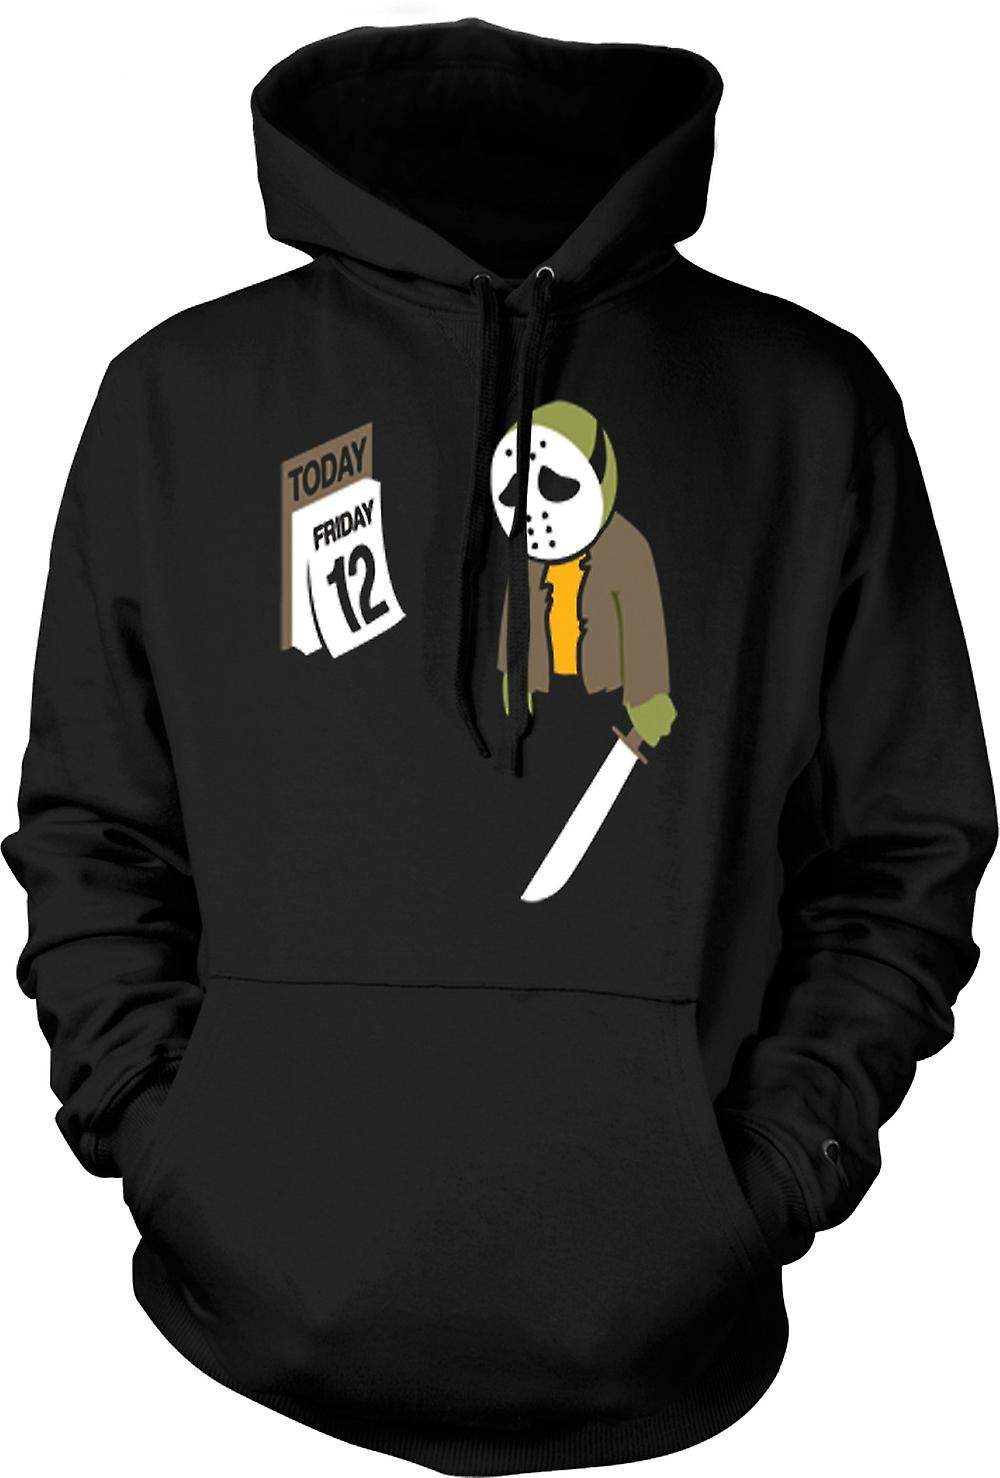 Enfant Sweat Capuche - vendredi 12 Jason Voorhees